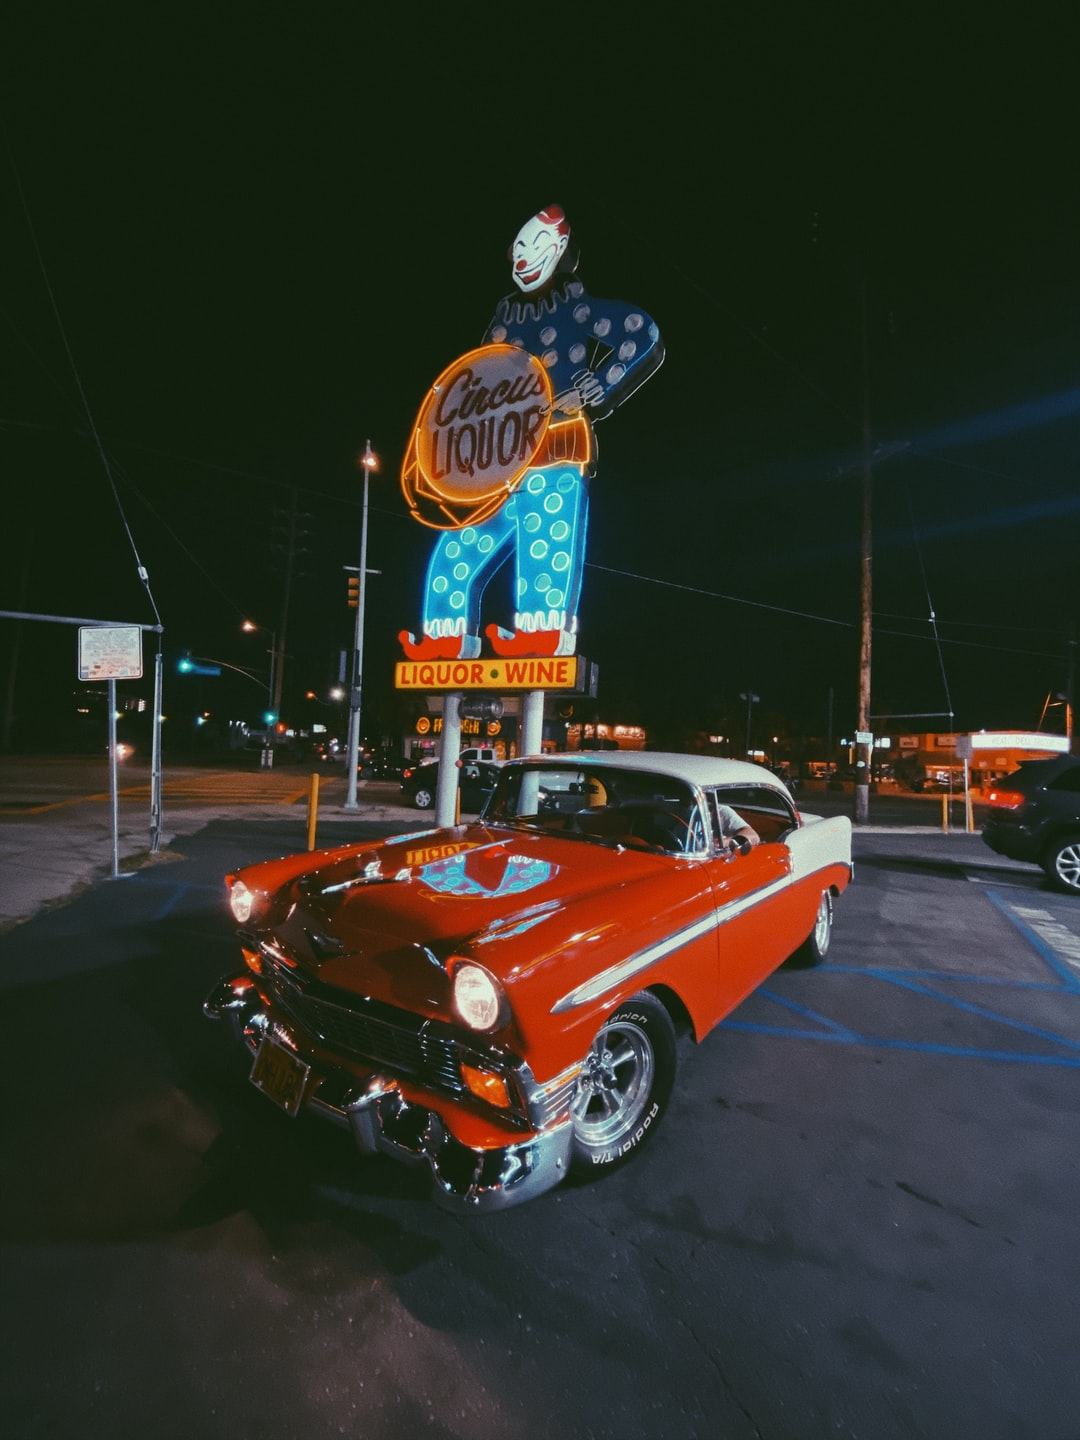 1956 Chevy BelAir in front of Circus Liquor